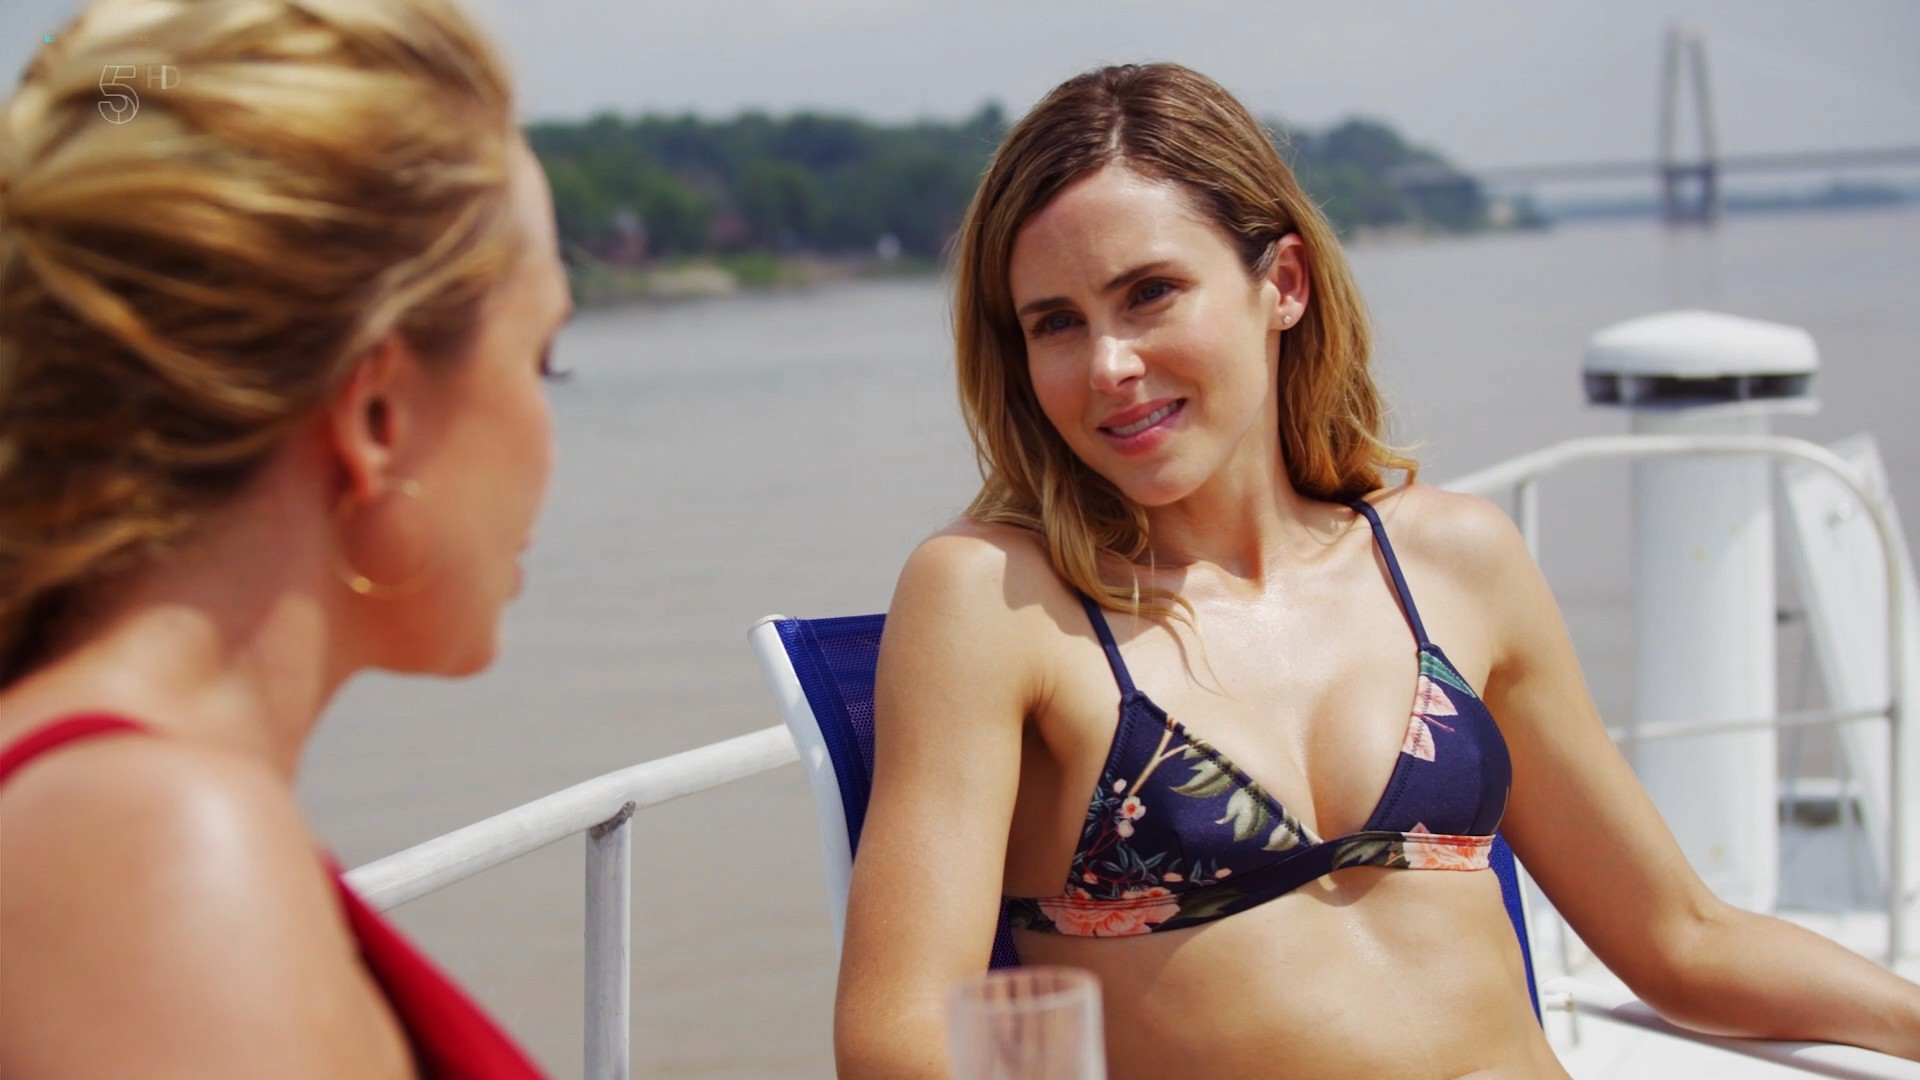 Anna Hutchison hot bikini Melissa Bolona and others sexy too - Murder at the Mansion (2018) HDTV 1080p (11)